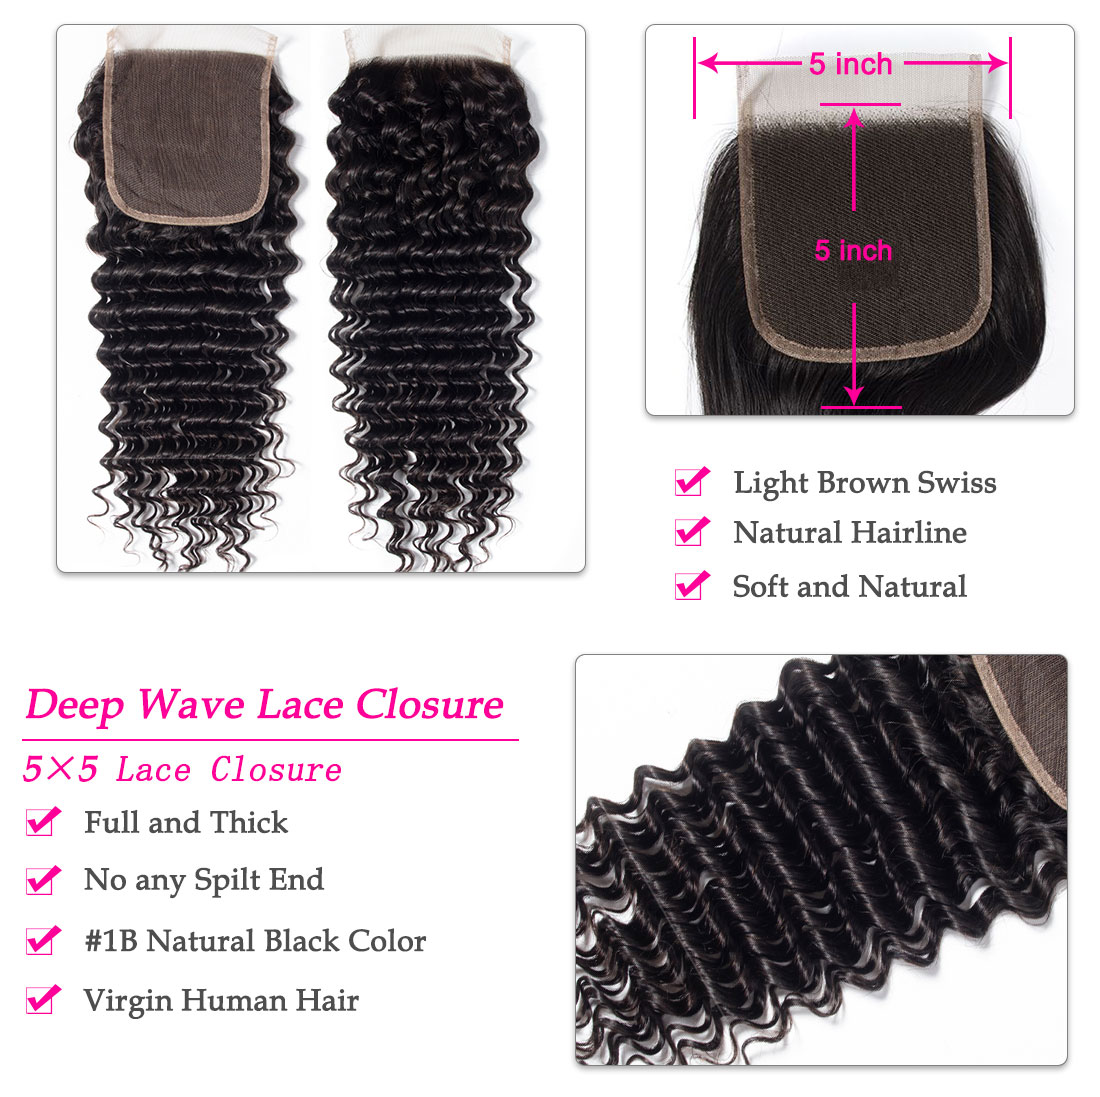 5x5 deep wave lace closure